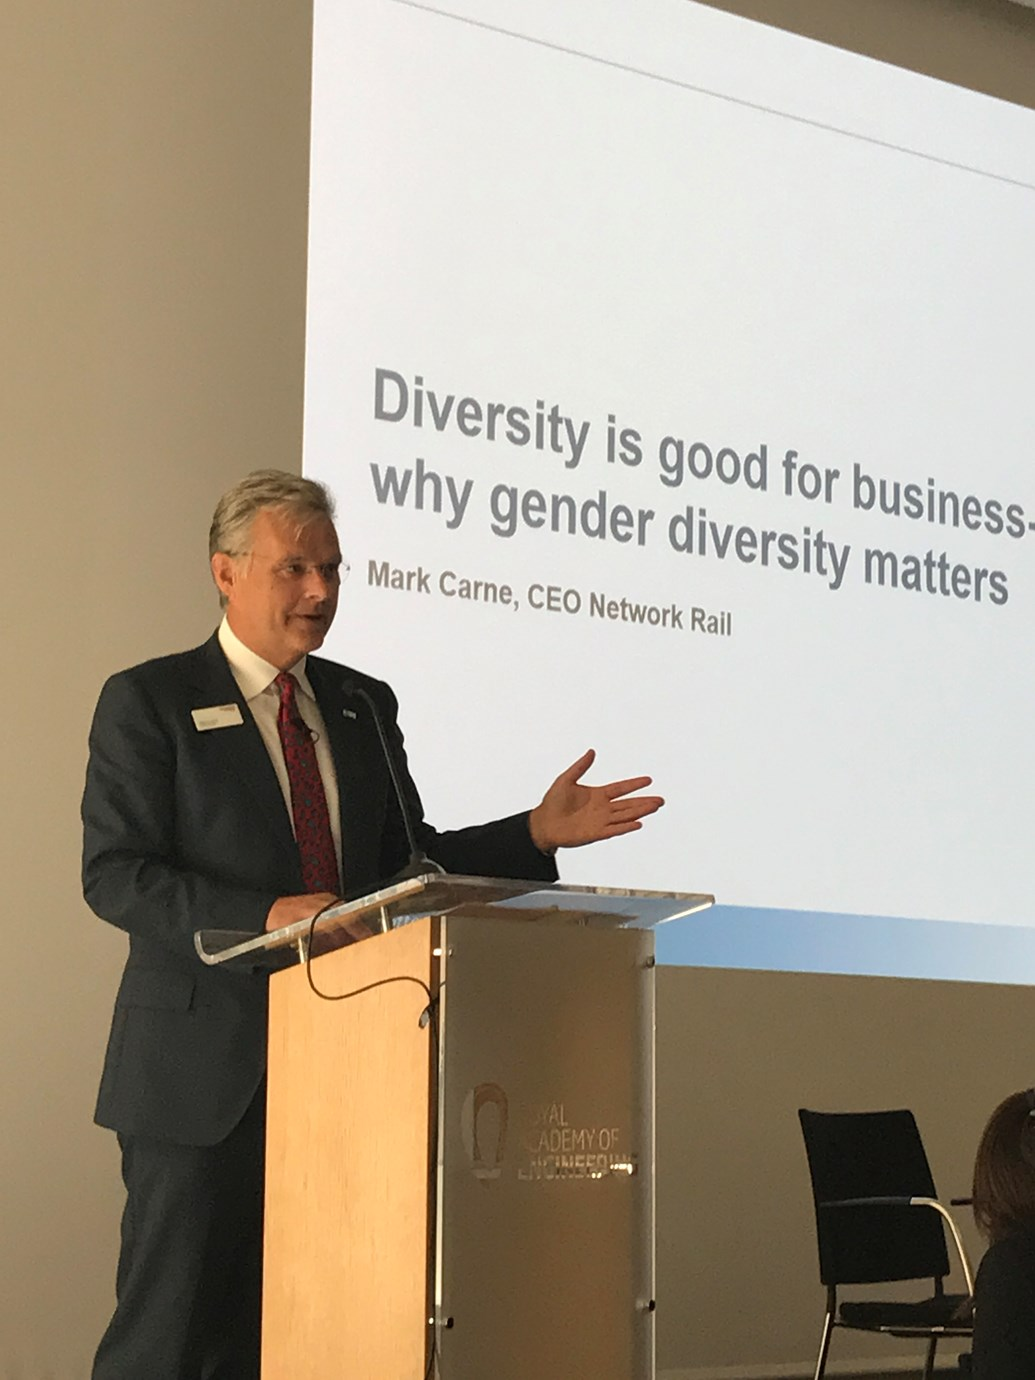 'Getting more women into the railway is key to better performance' says Network Rail: Mark Carne Everyone Summit speech Oct 17